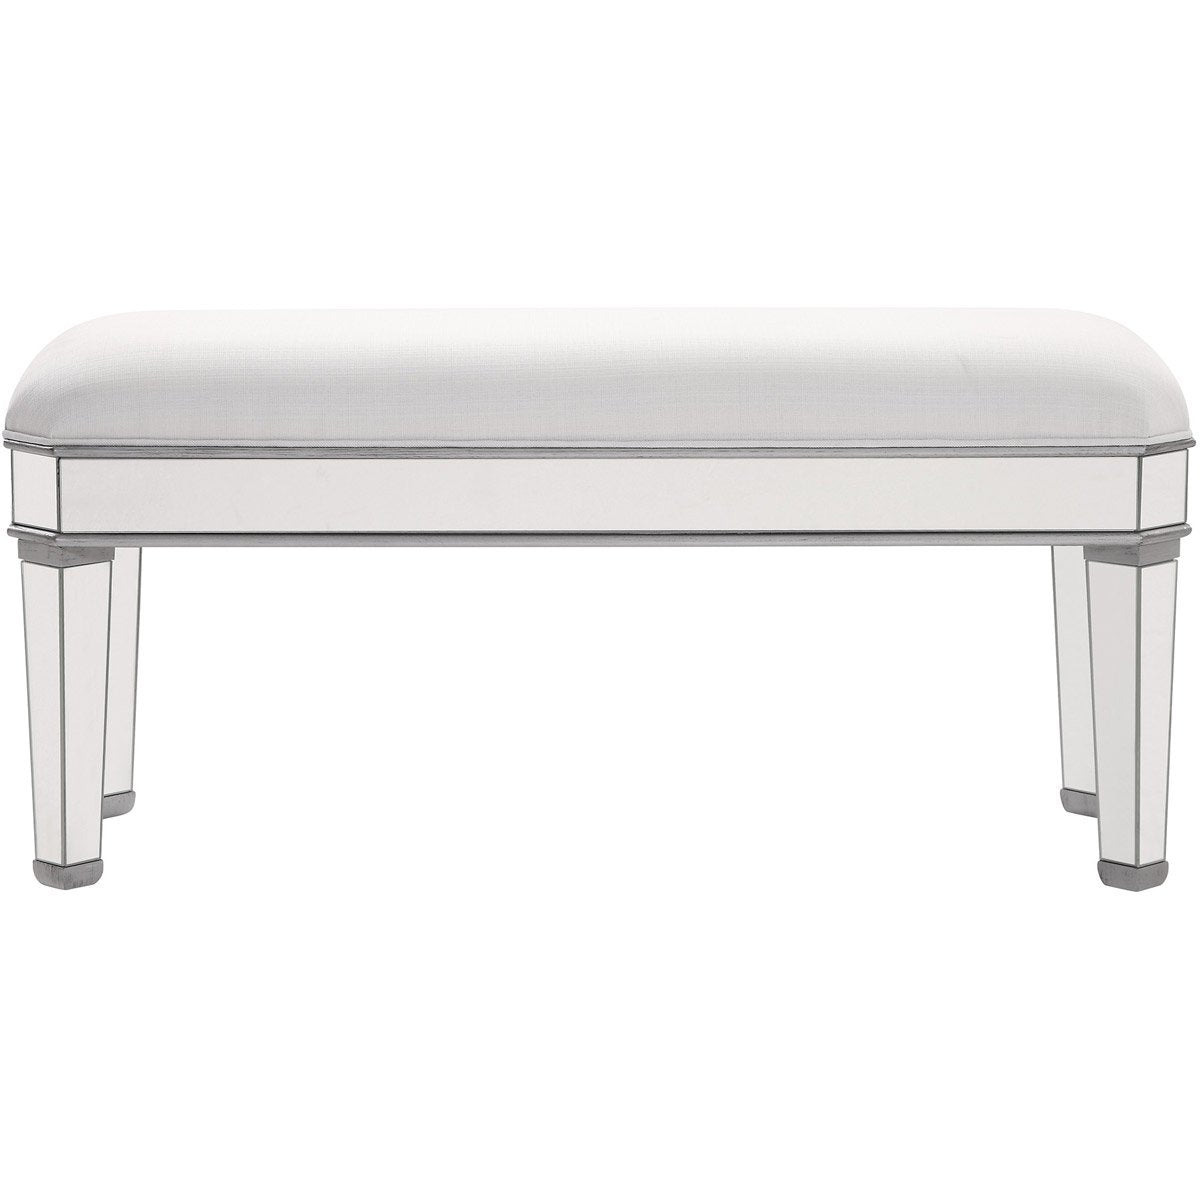 Contempo 44 X 21 Bench - Antique Silver Finish (Mf6-1012S) Bench